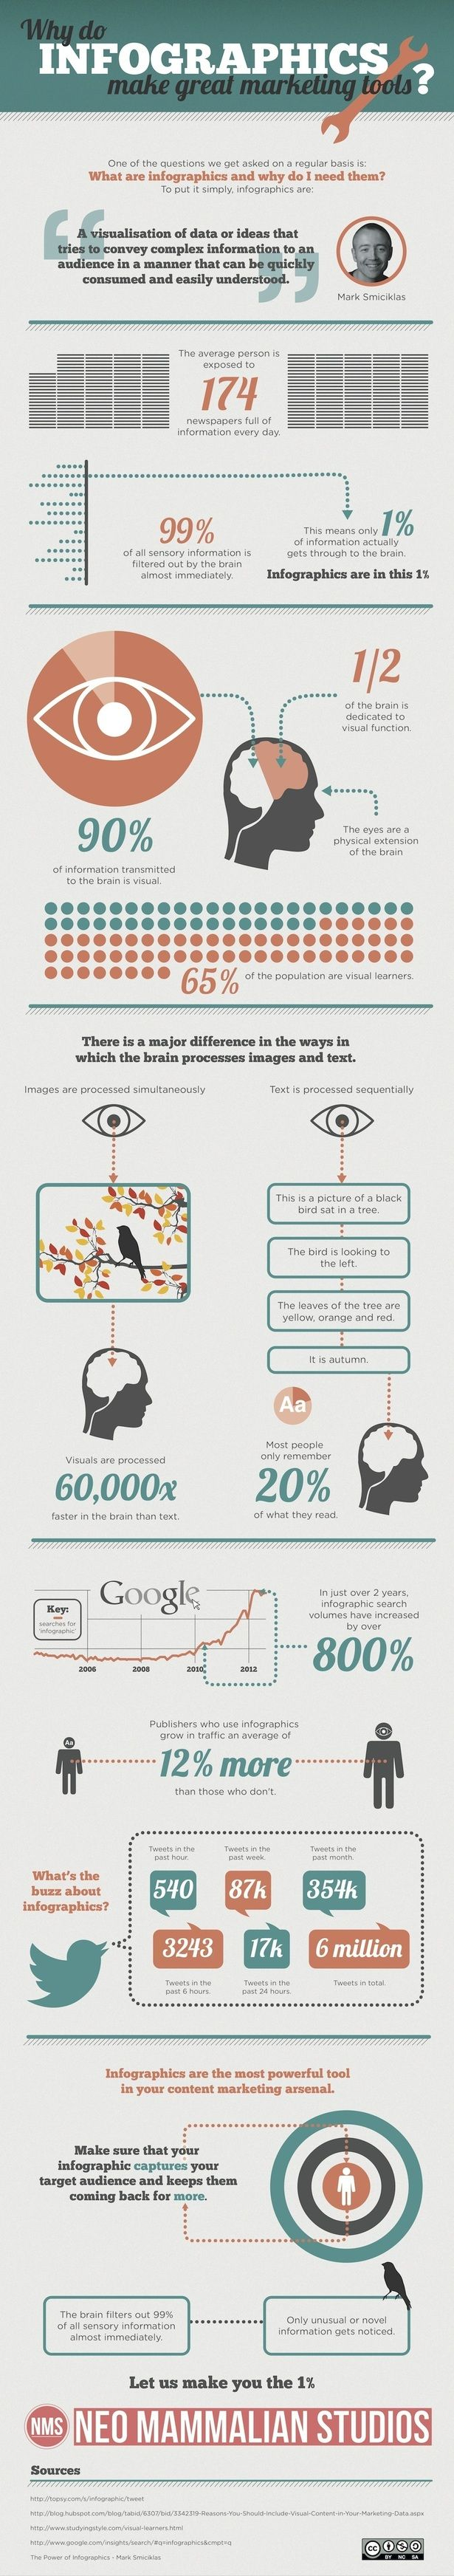 Why do infographics make great marketing tools? [infographic] | Econsultancy: Las Infografías, Digital Marketing, Marketing Tools, Social Media, De Marketing, Socialmedia, Content Marketing, Marketing Infographics